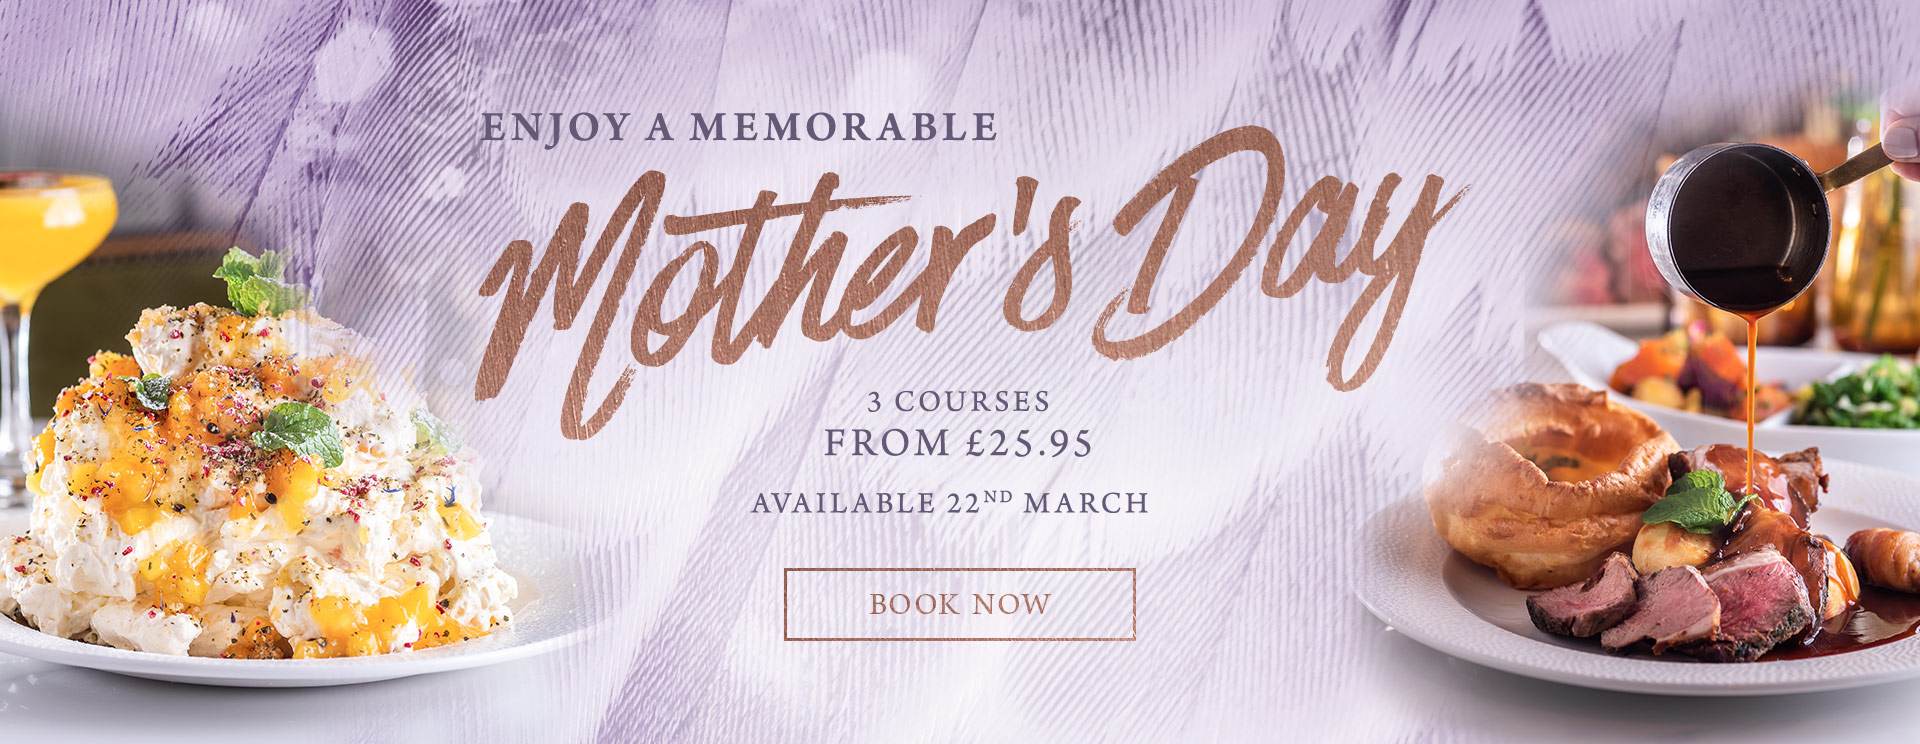 Mother's Day 2019 at The George & Dragon